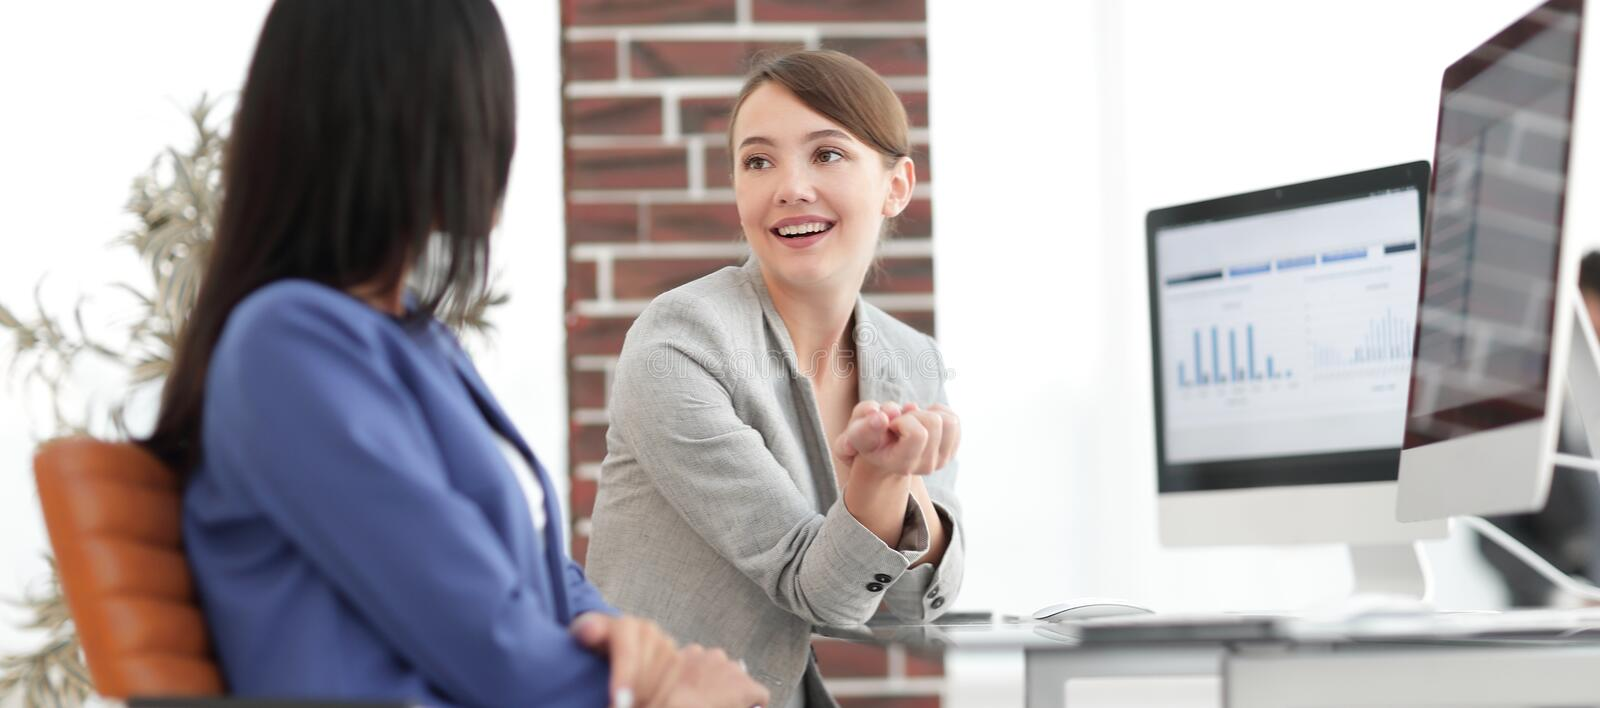 Beautiful girls working together in the office stock image